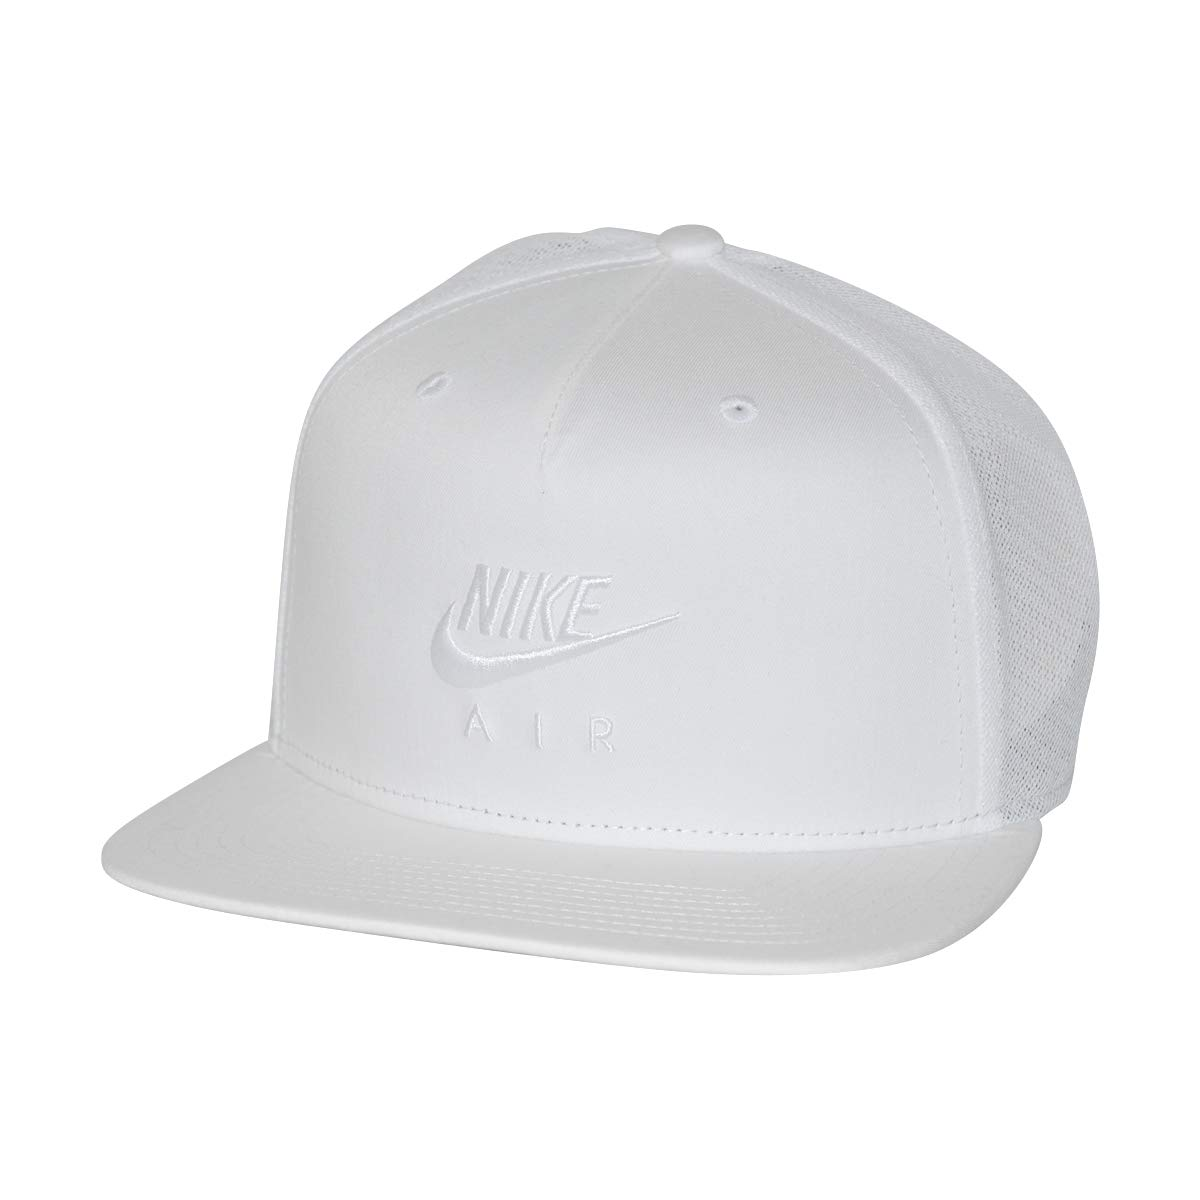 a92e85c4a6222 Nike NSW Pro Cap Air Caps Snapback Hat at Amazon Men s Clothing store